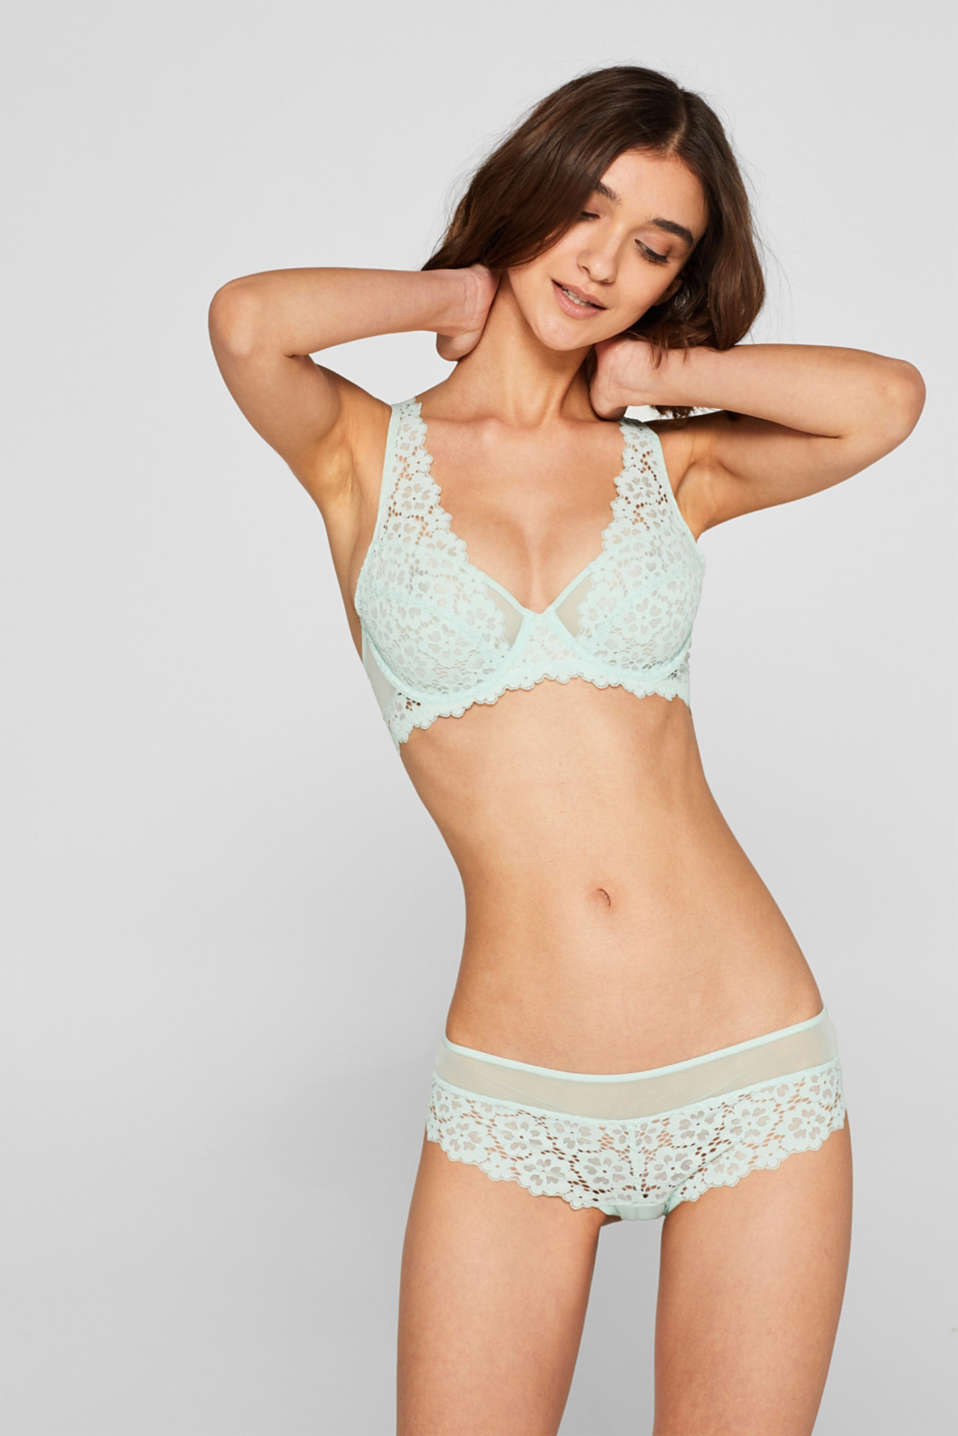 Esprit - Non-padded underwire bra made of lace in a crocheted look